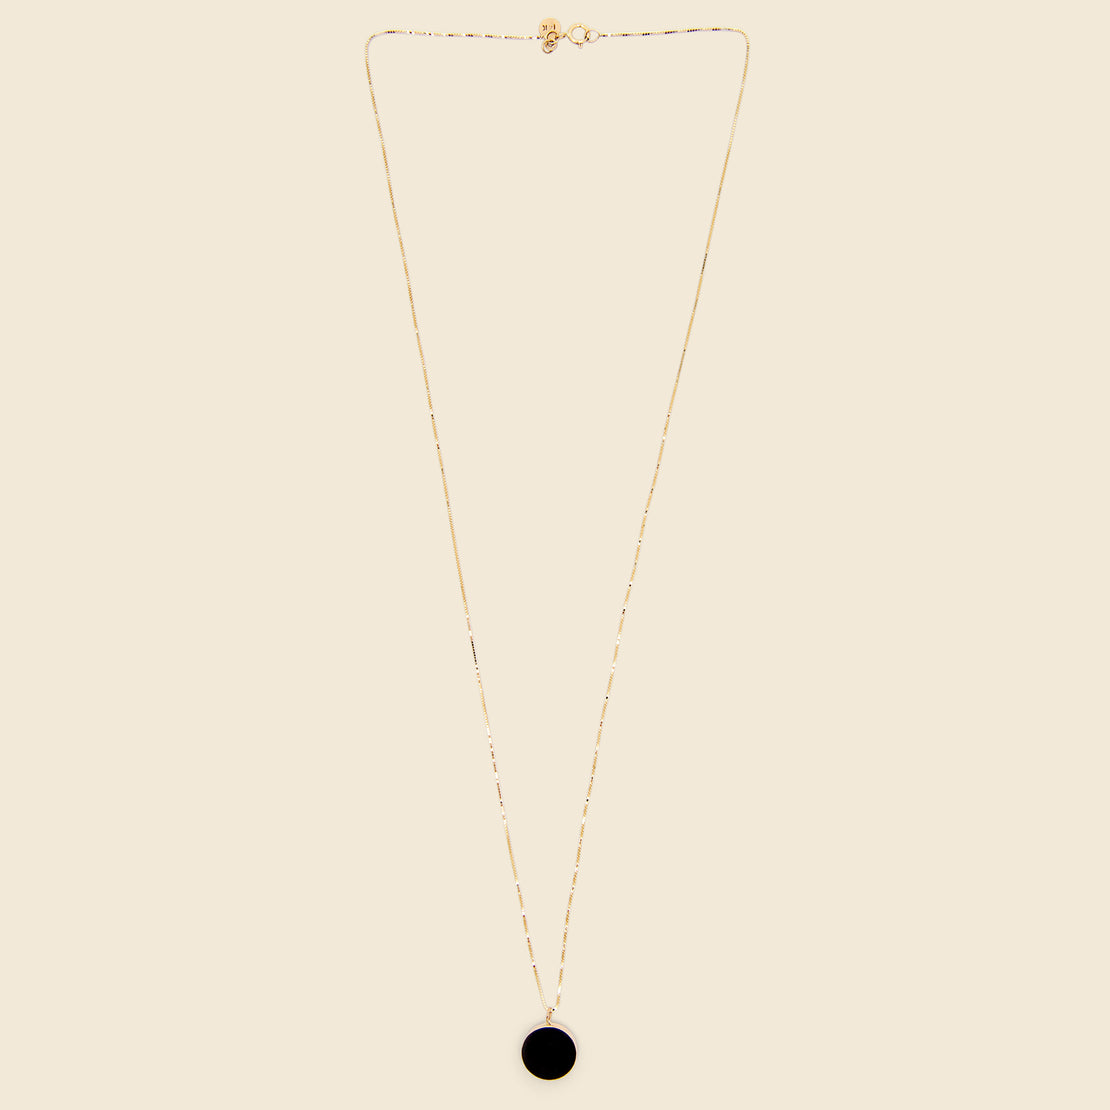 Circ Necklace - Black Jade